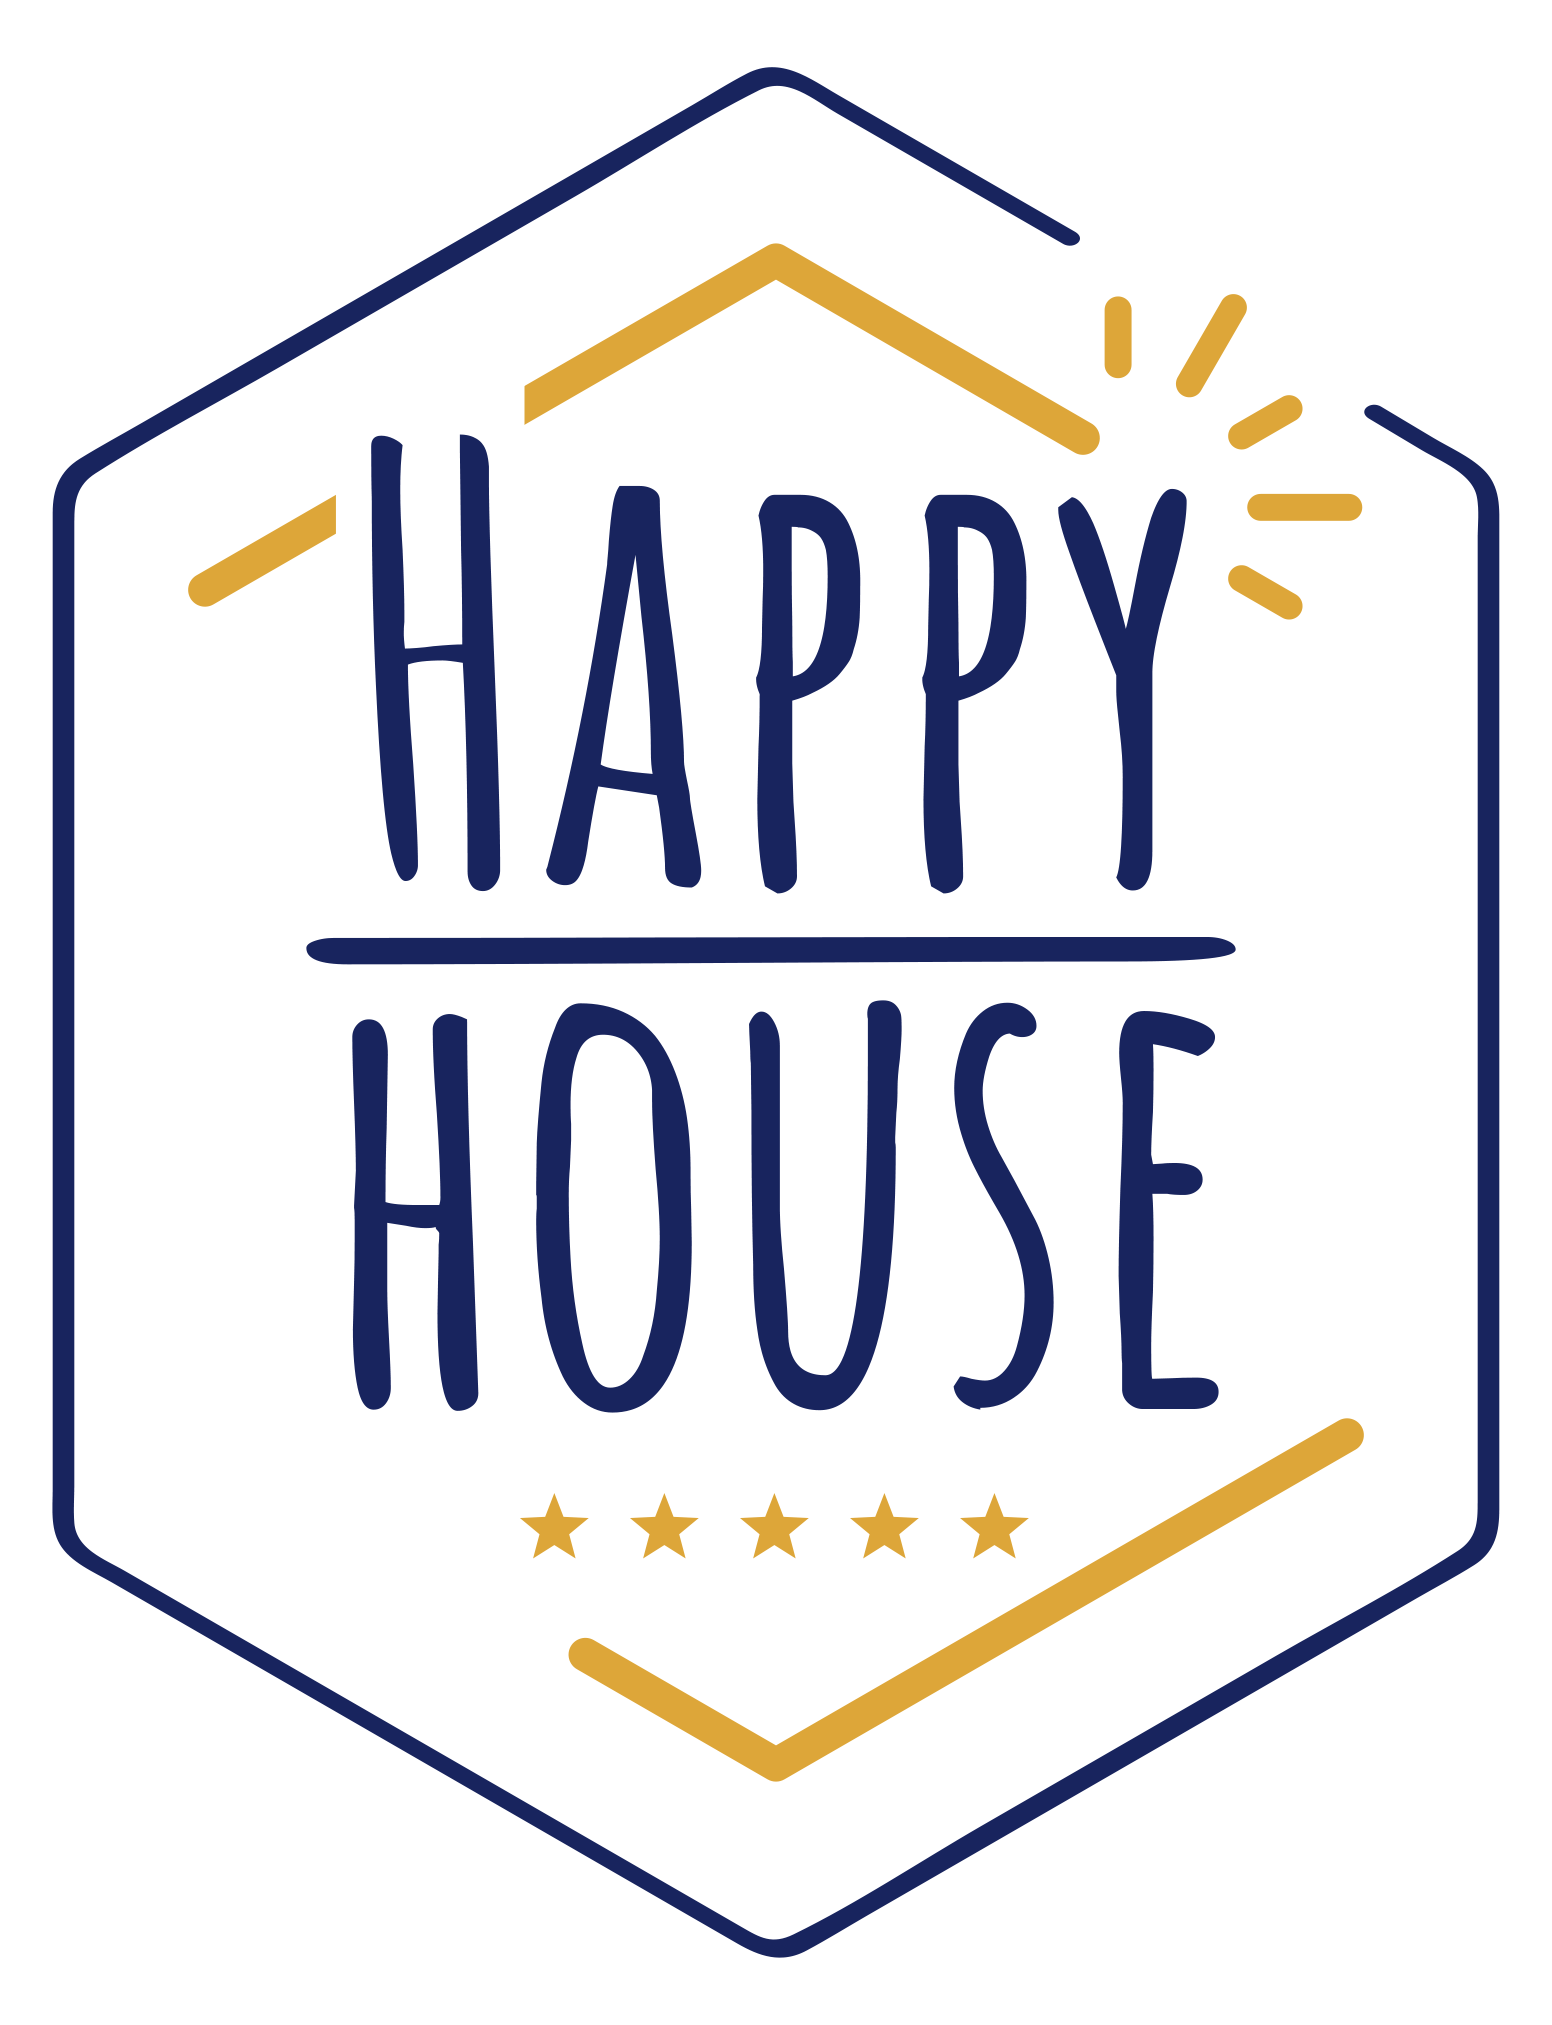 HappyHouse